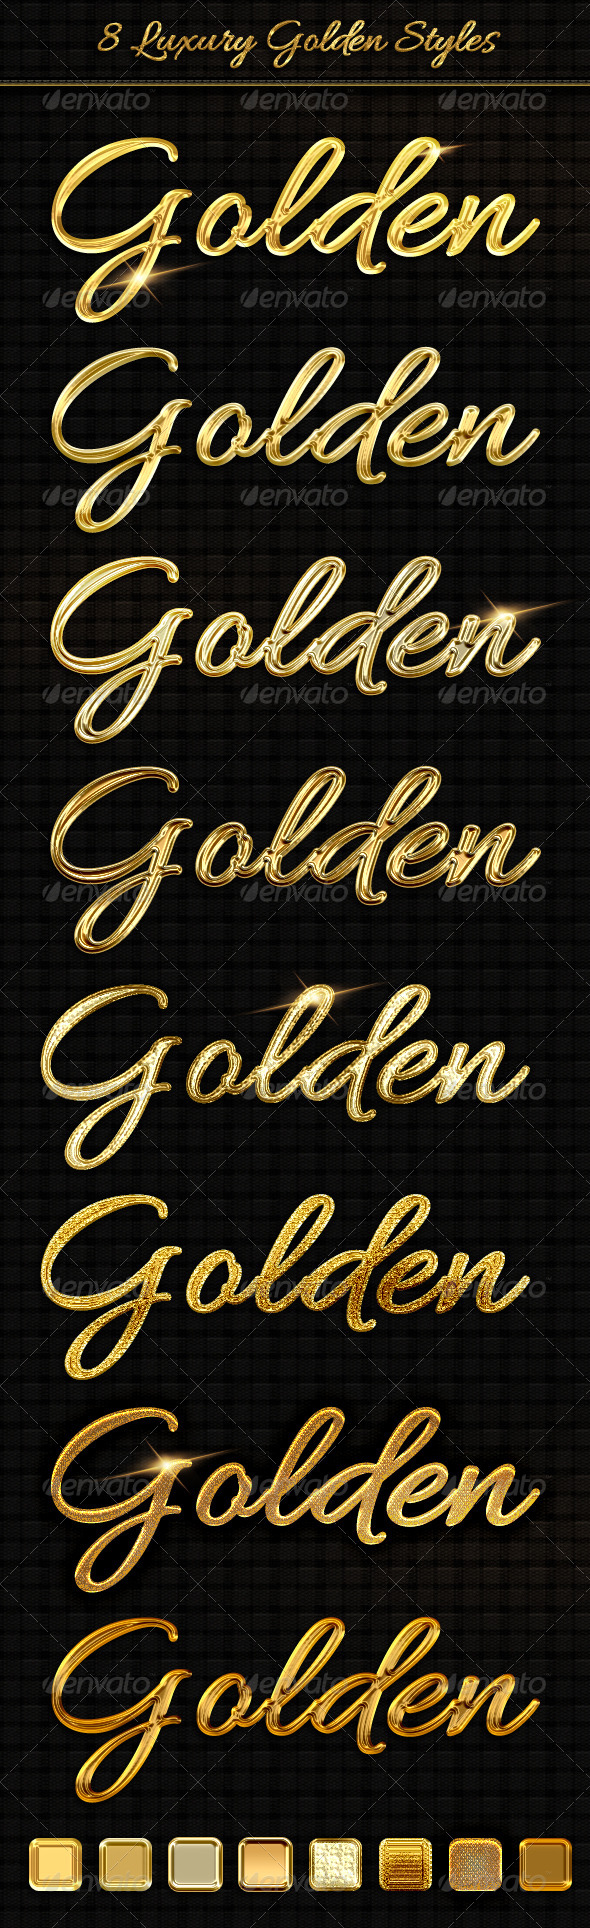 GraphicRiver 8 Luxury Golden Text Styles 6202020